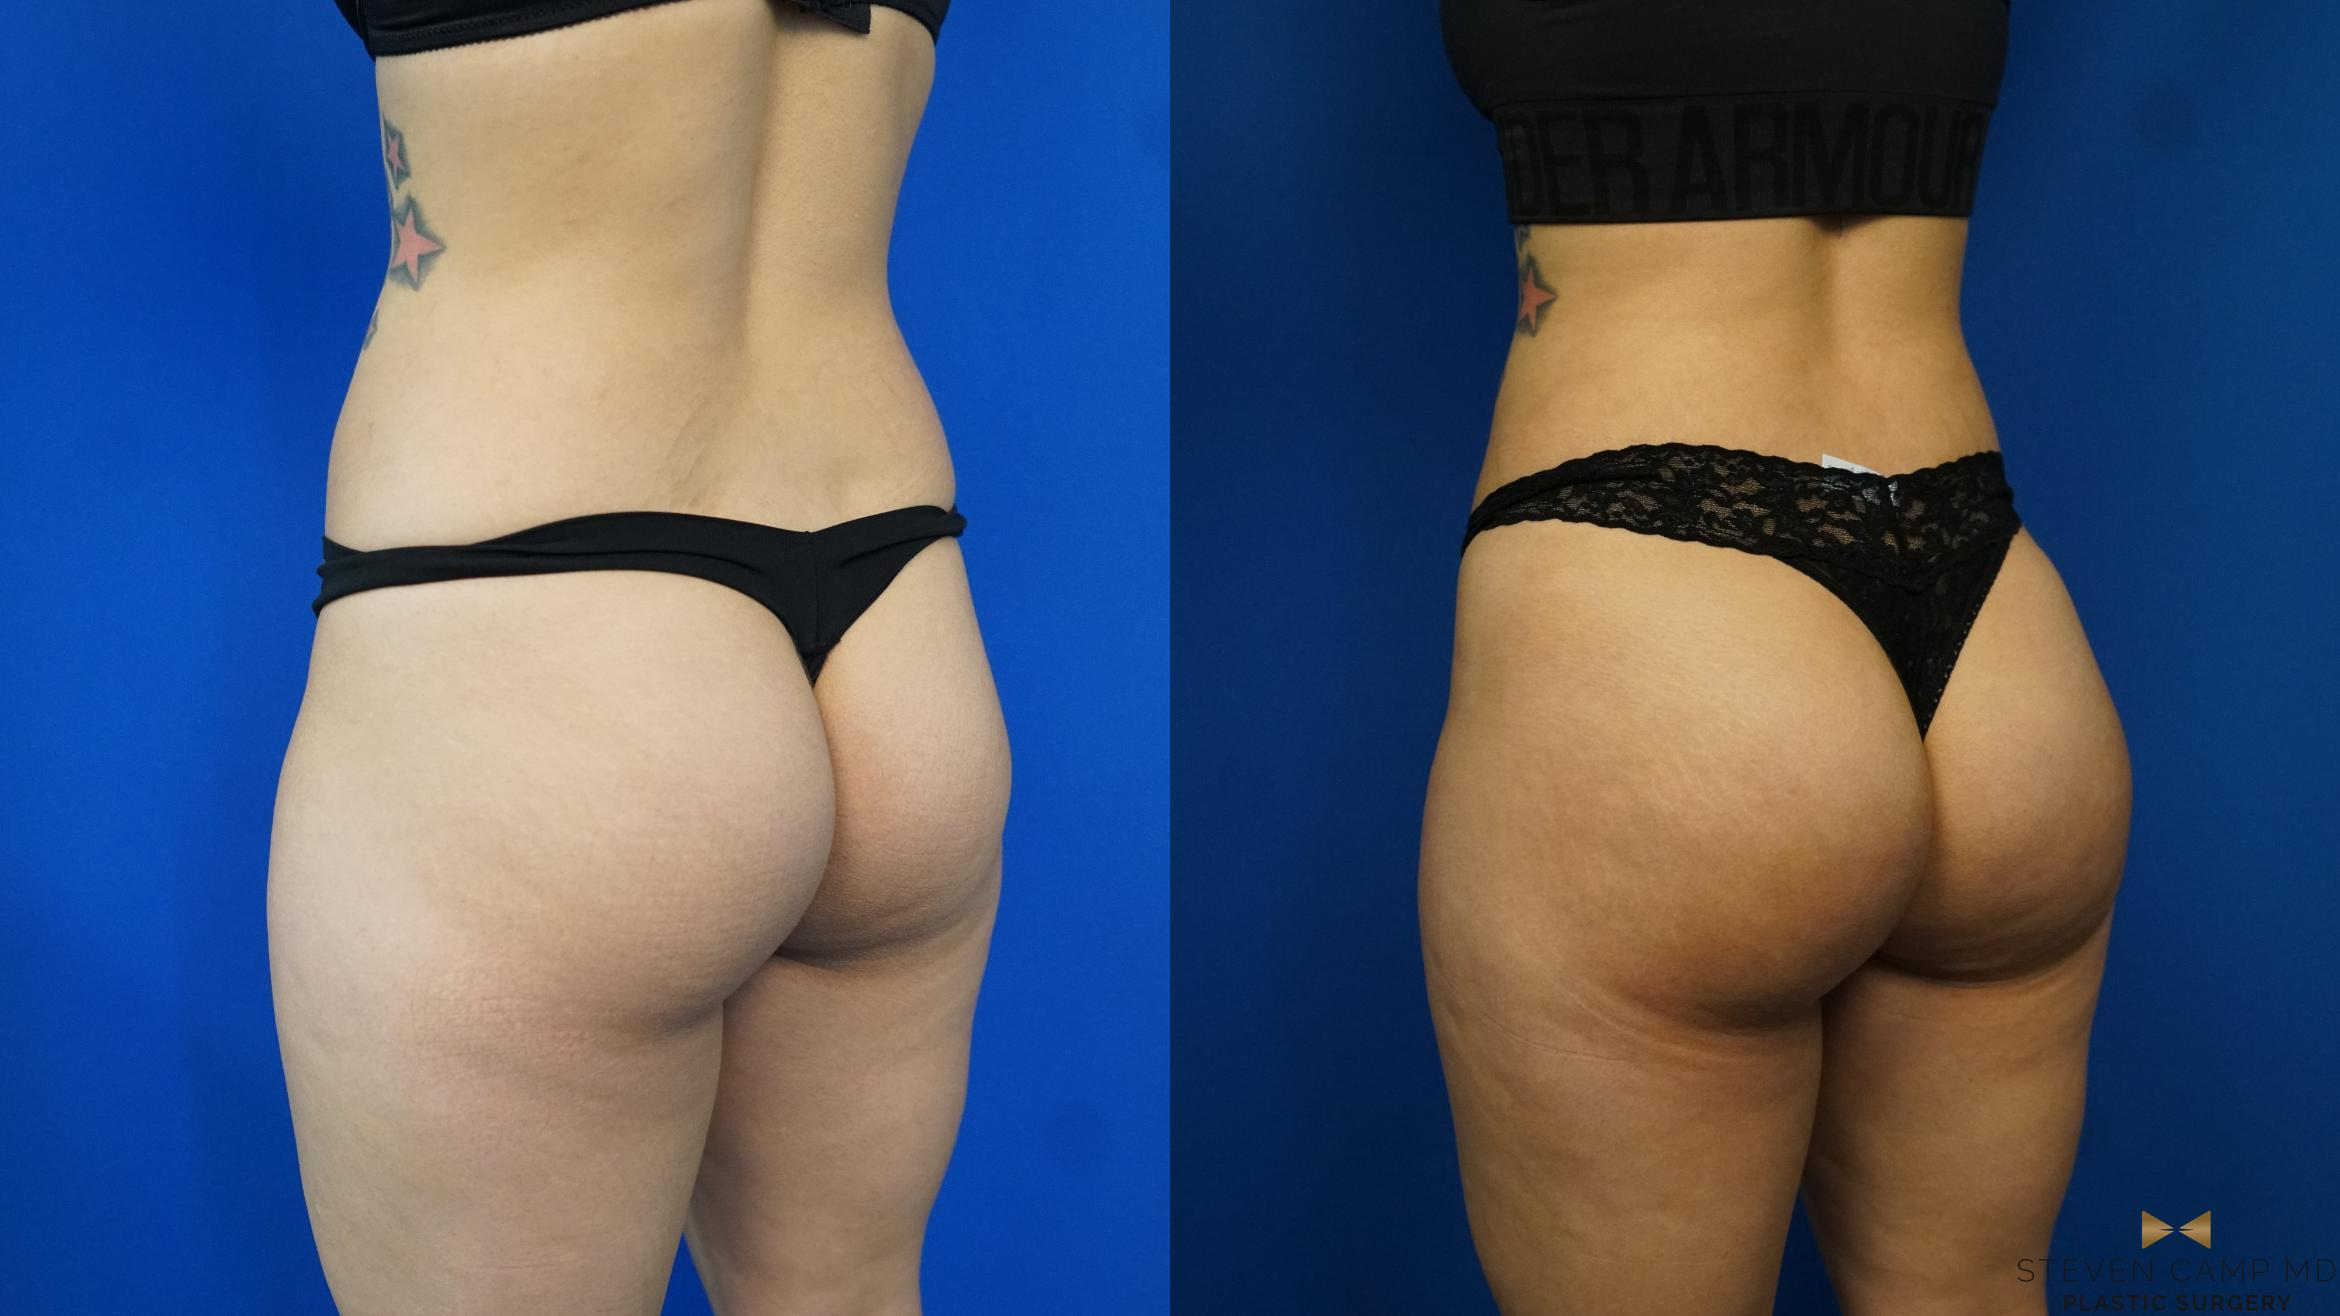 Brazilian Butt Lift Before & After Photo | Fort Worth, Texas | Steven Camp MD Plastic Surgery